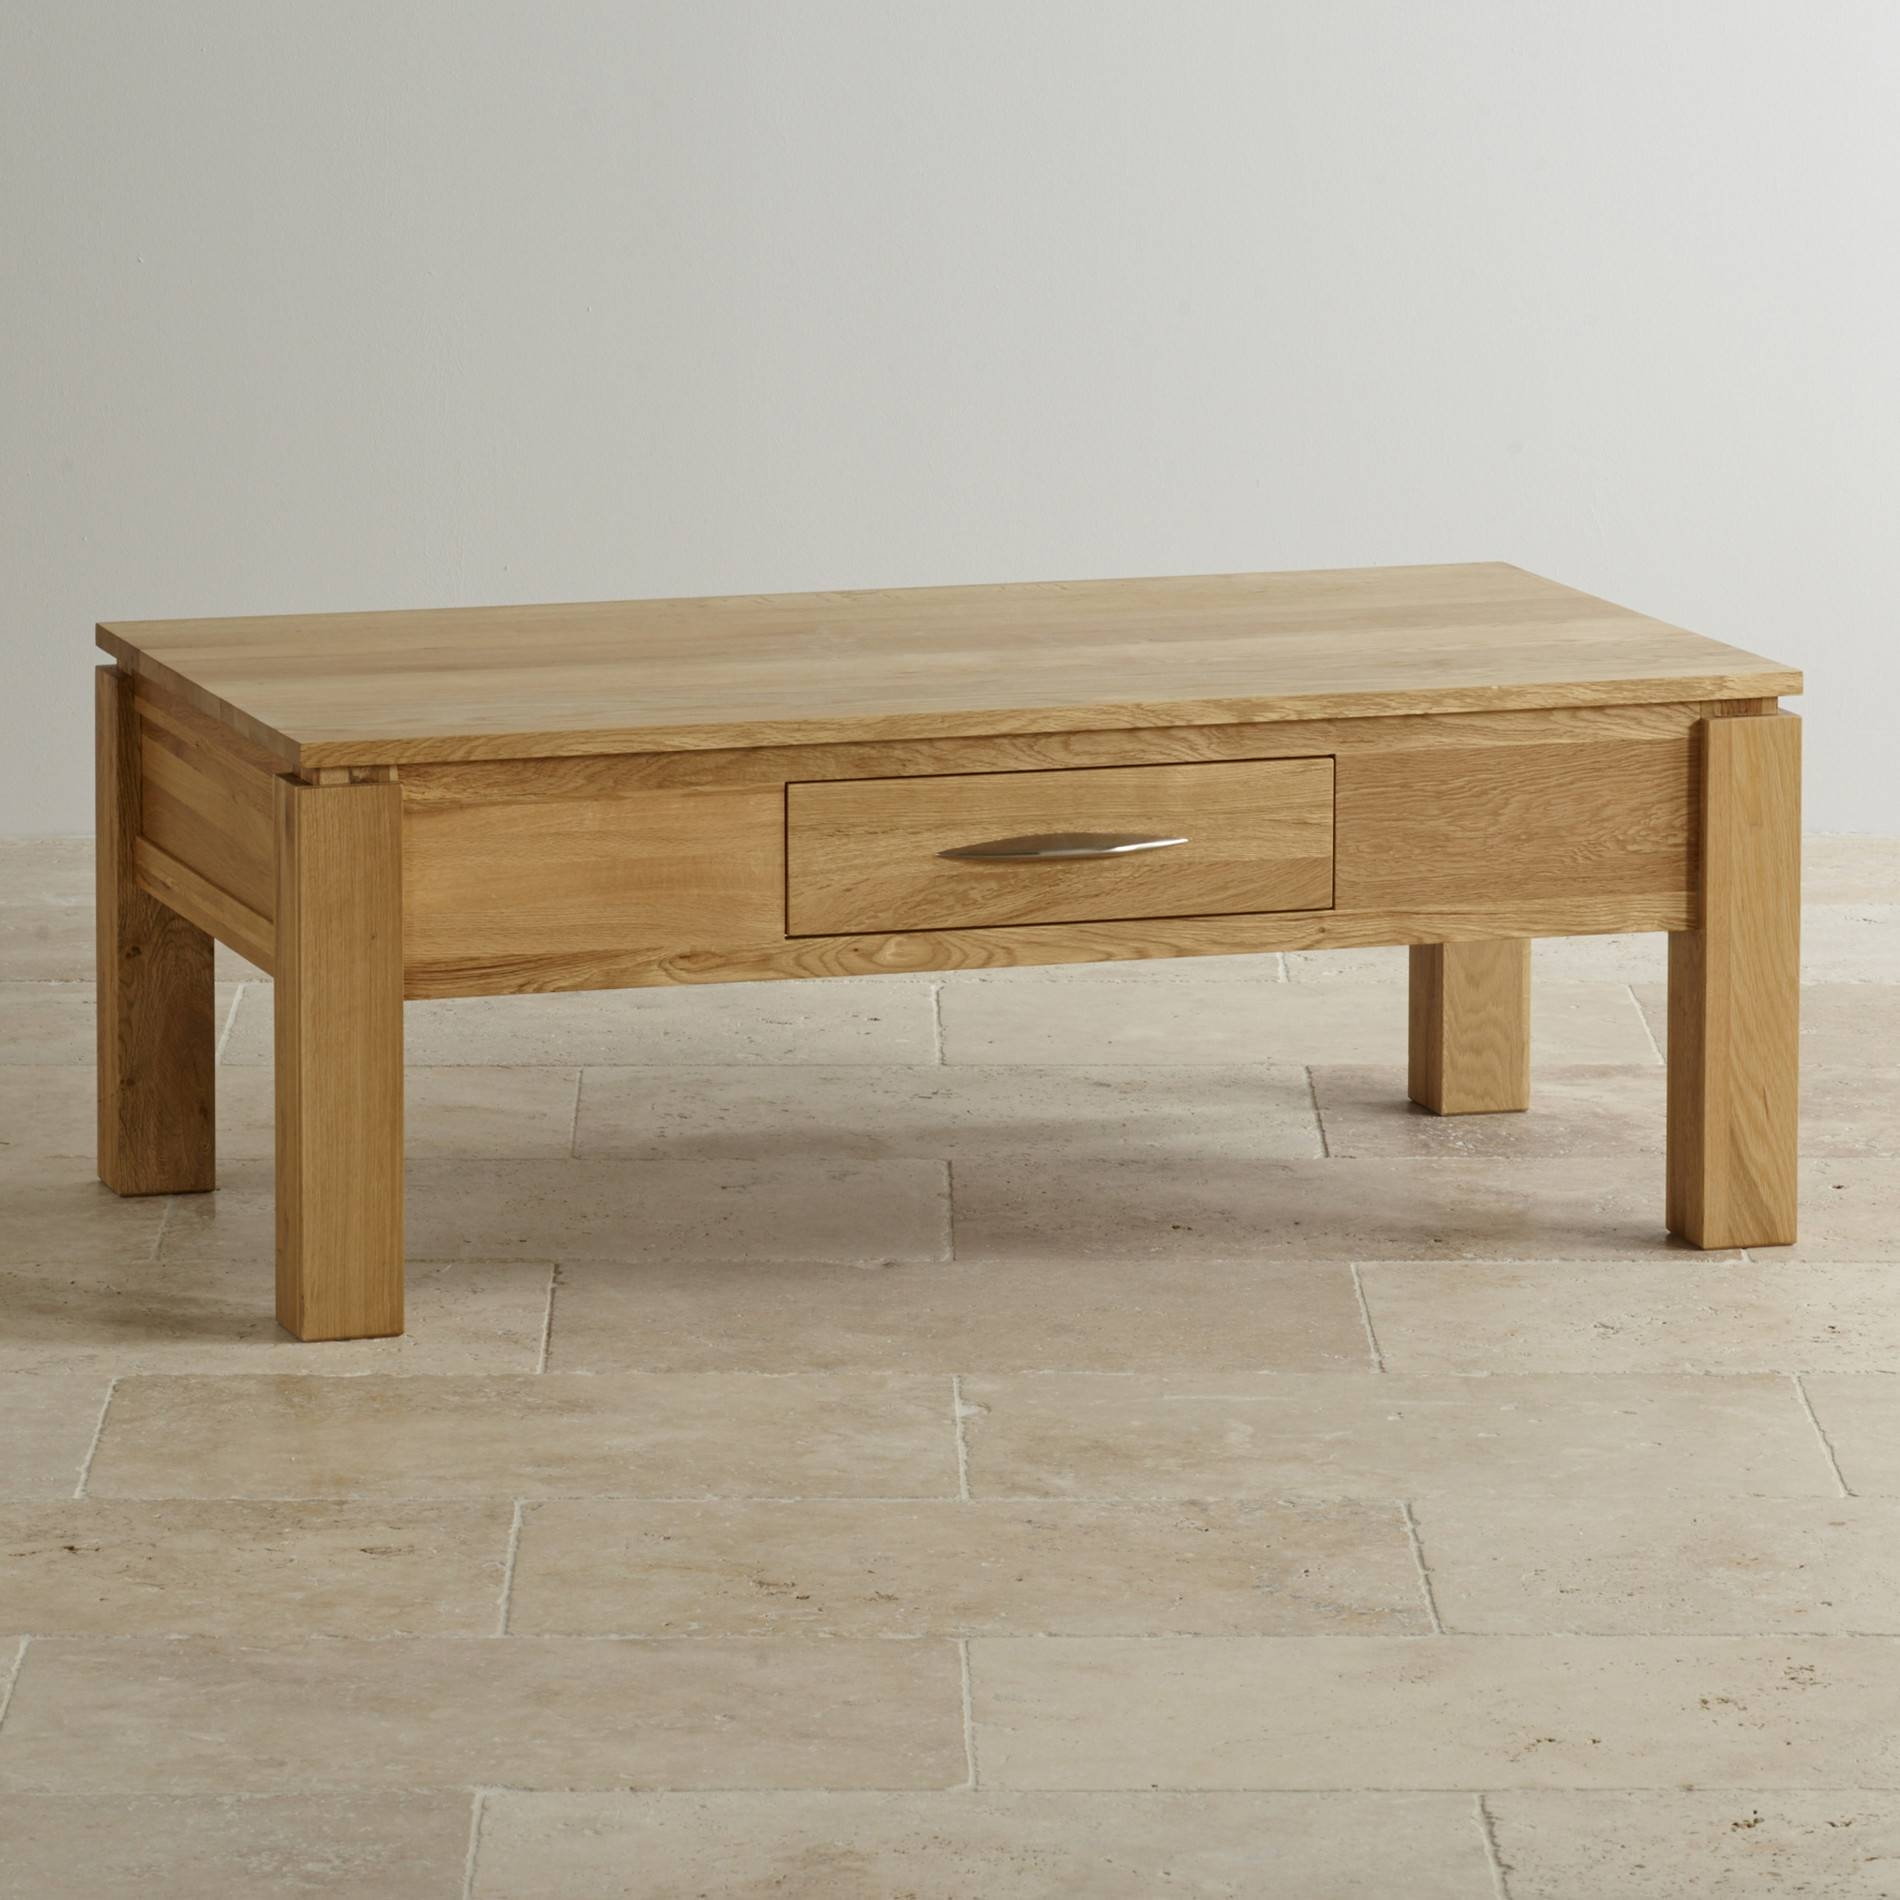 Galway Large Coffee Table In Solid Oak | Oak Furniture Land Within Large Solid Wood Coffee Tables (View 5 of 15)